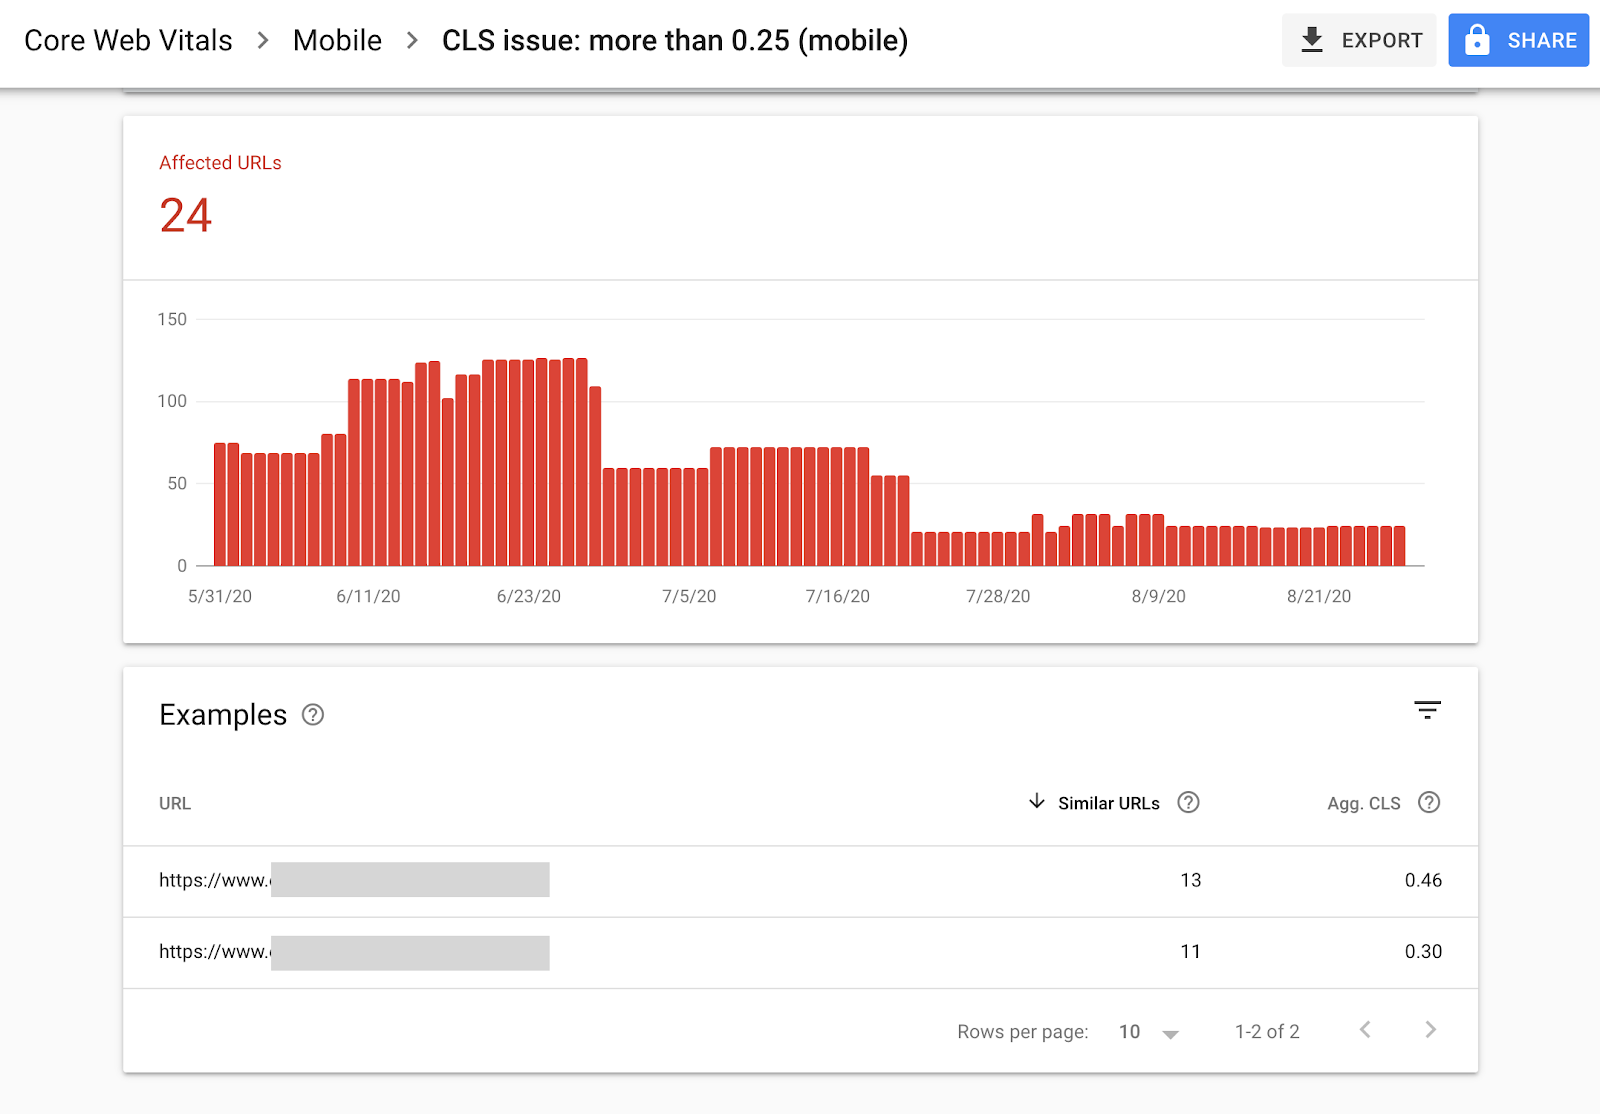 CLS issues reported by Search Console